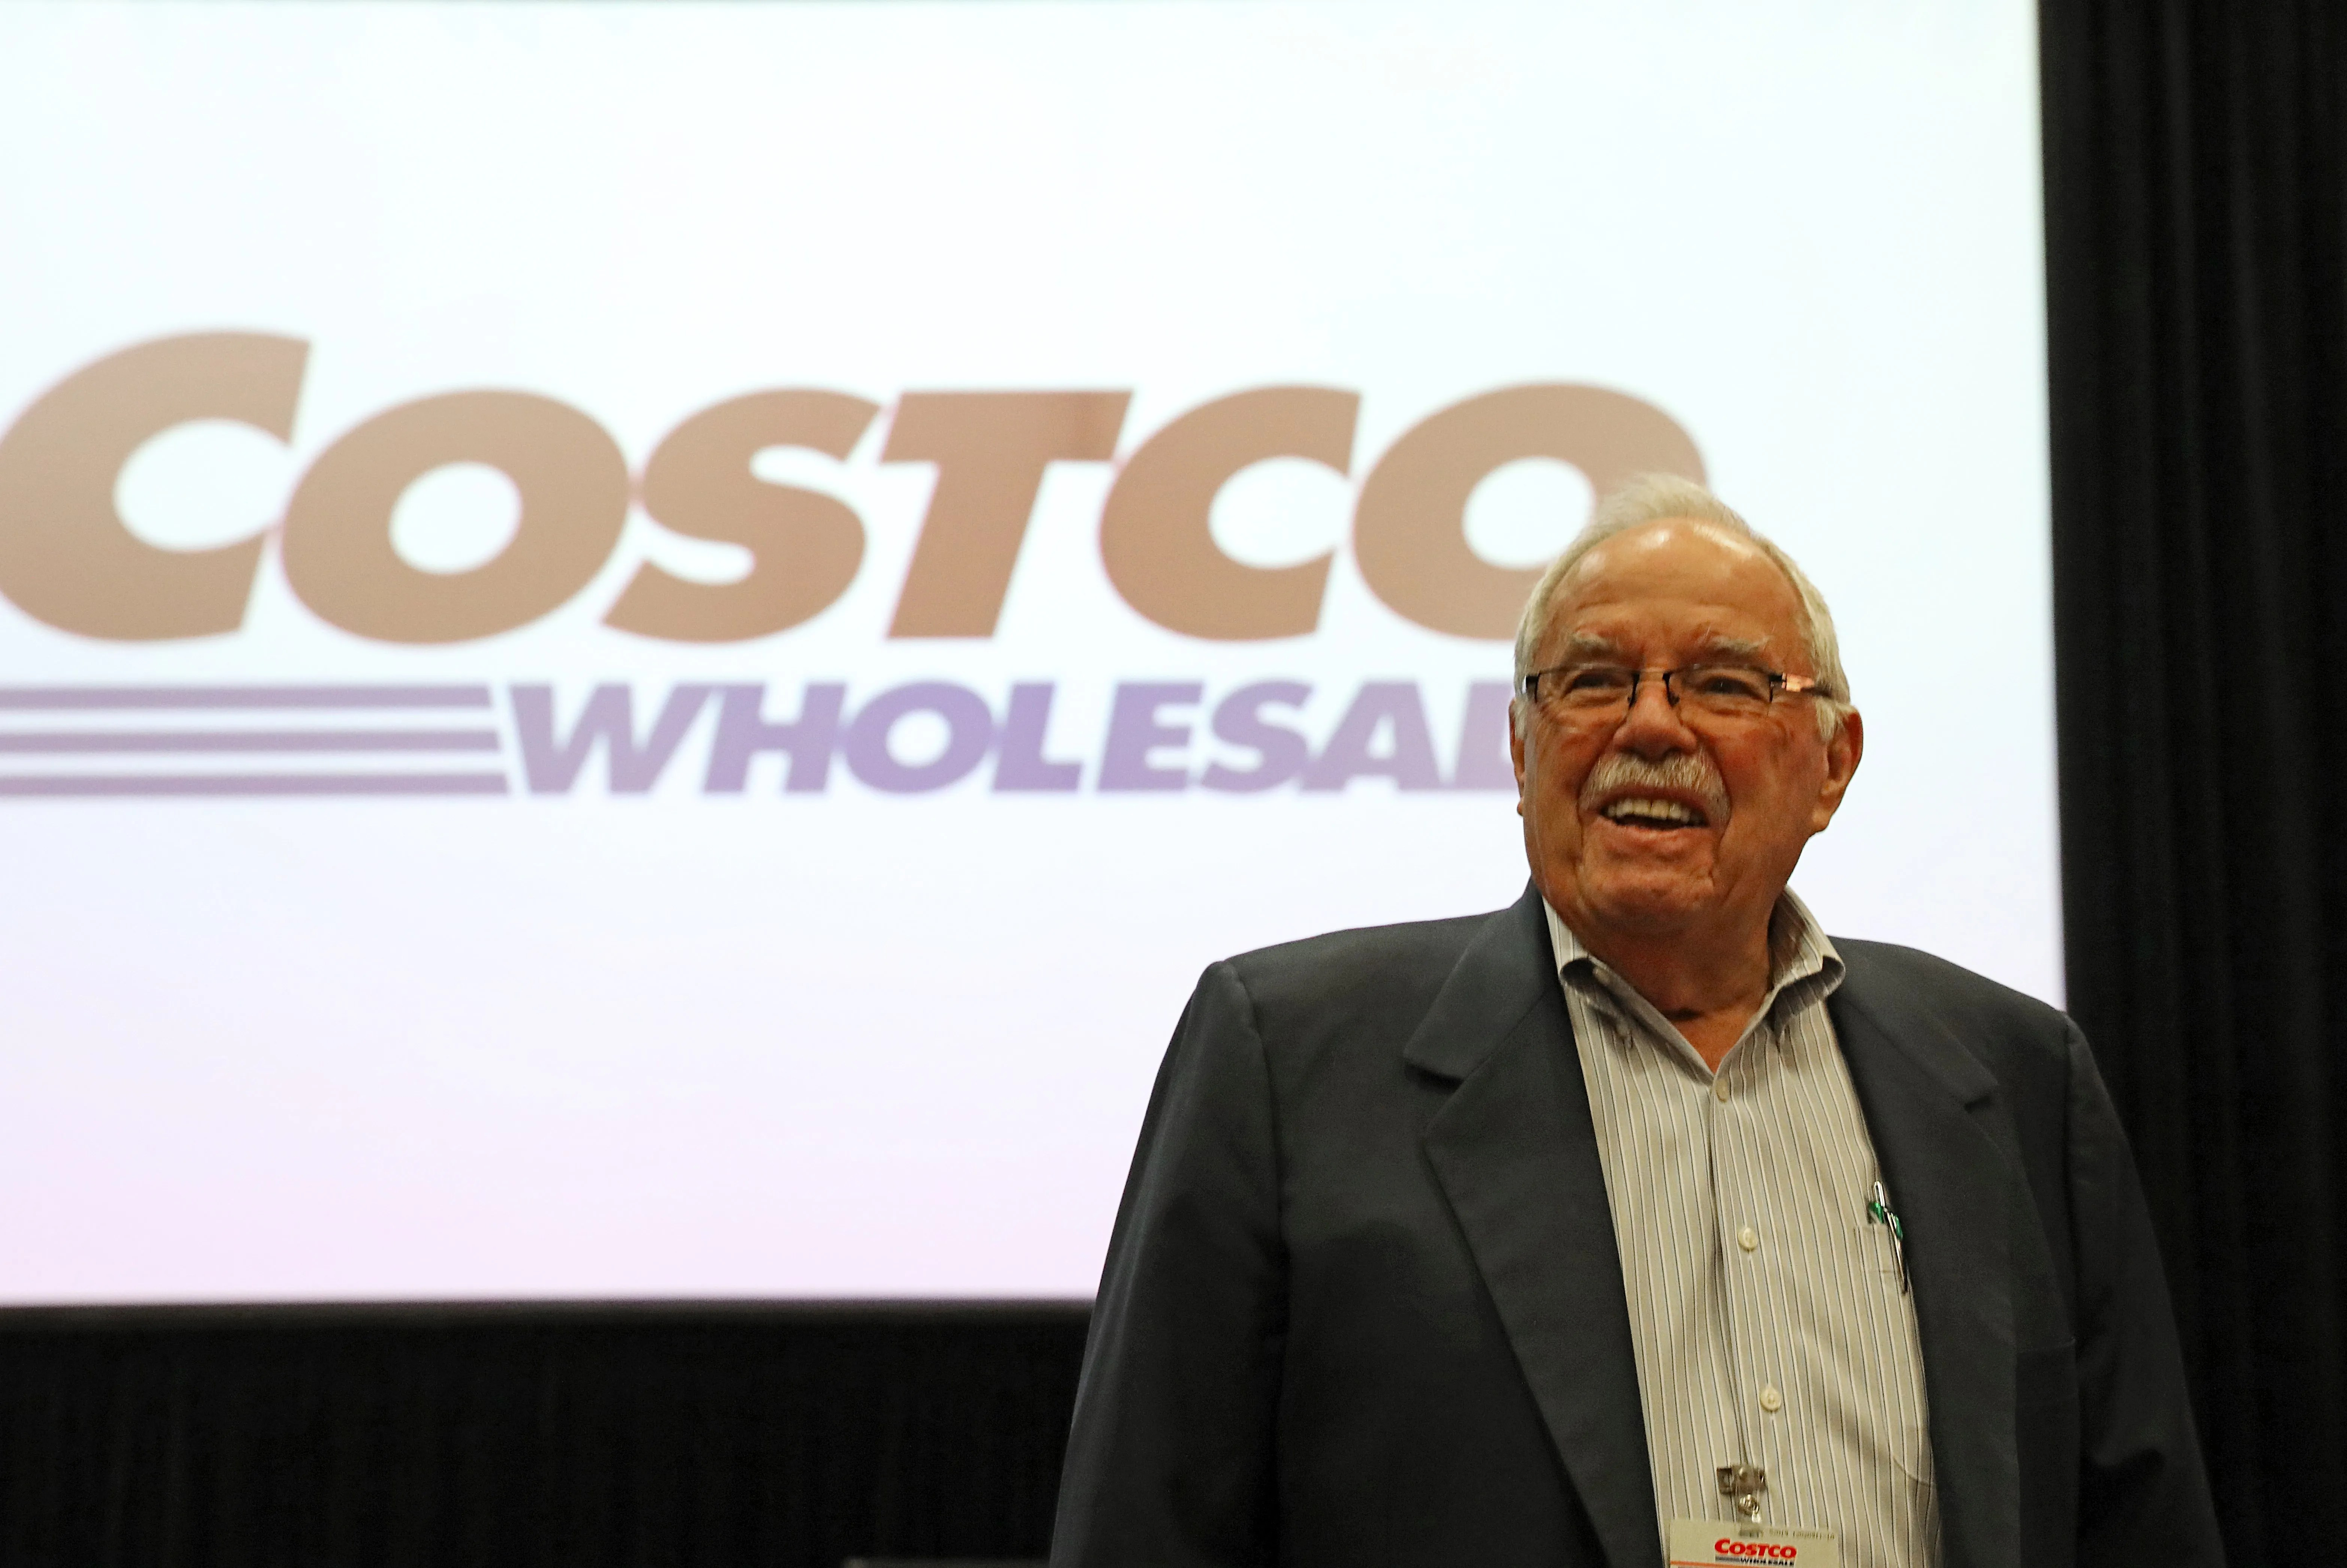 Career wisdom from Costco\u0027s Jim Sinegal amid calls for his